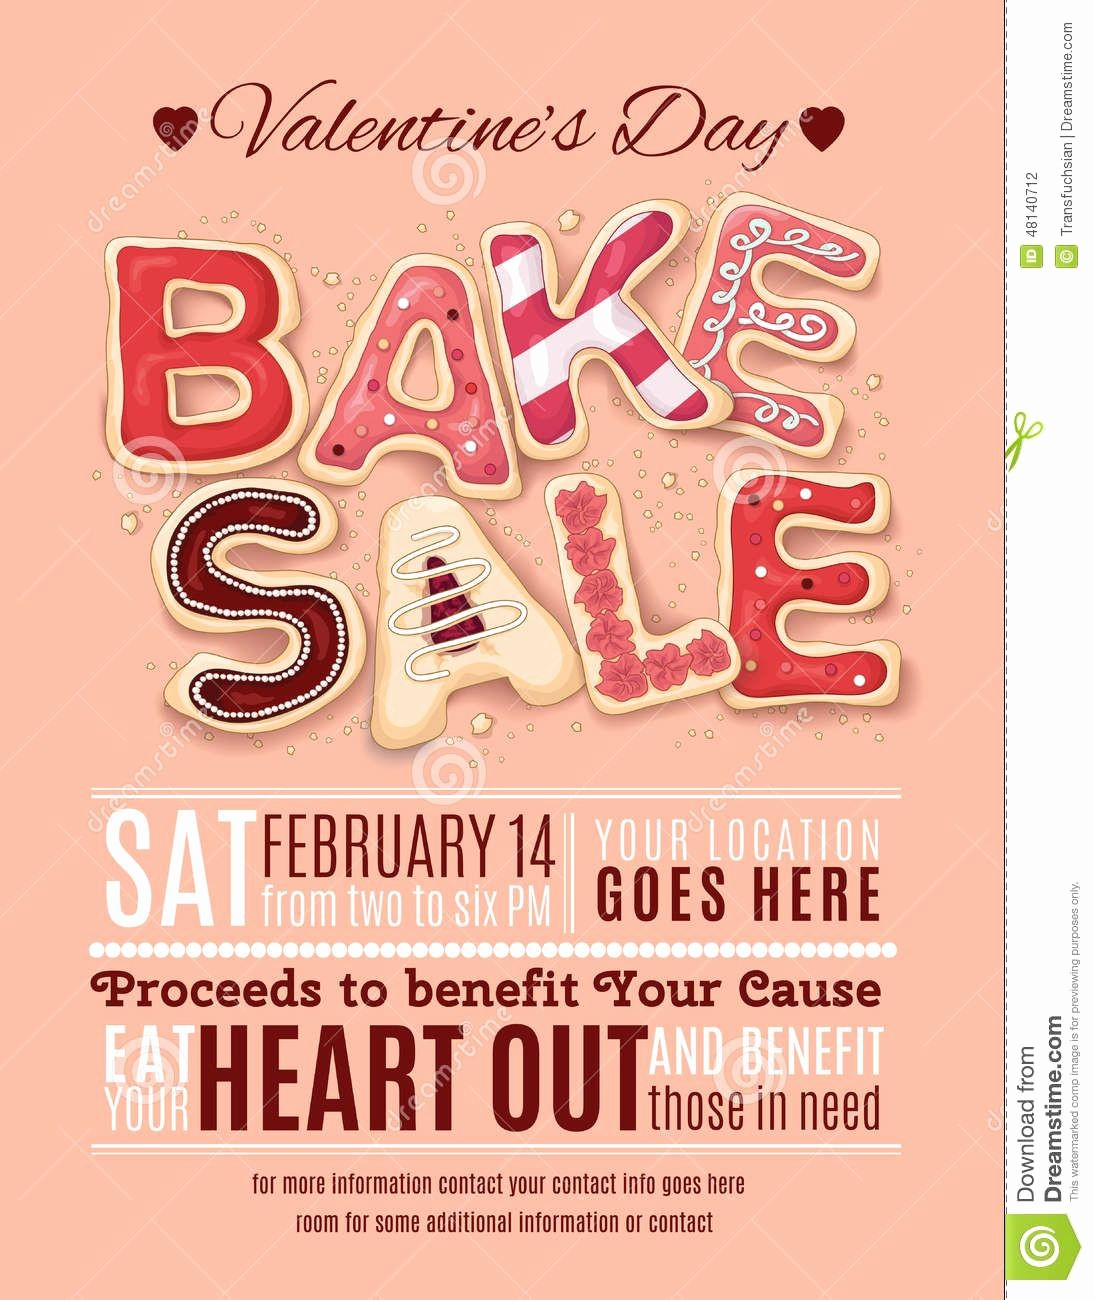 Bake Sale Flyer Template Microsoft Luxury Valentines Day Bake Sale Flyer Template Download From